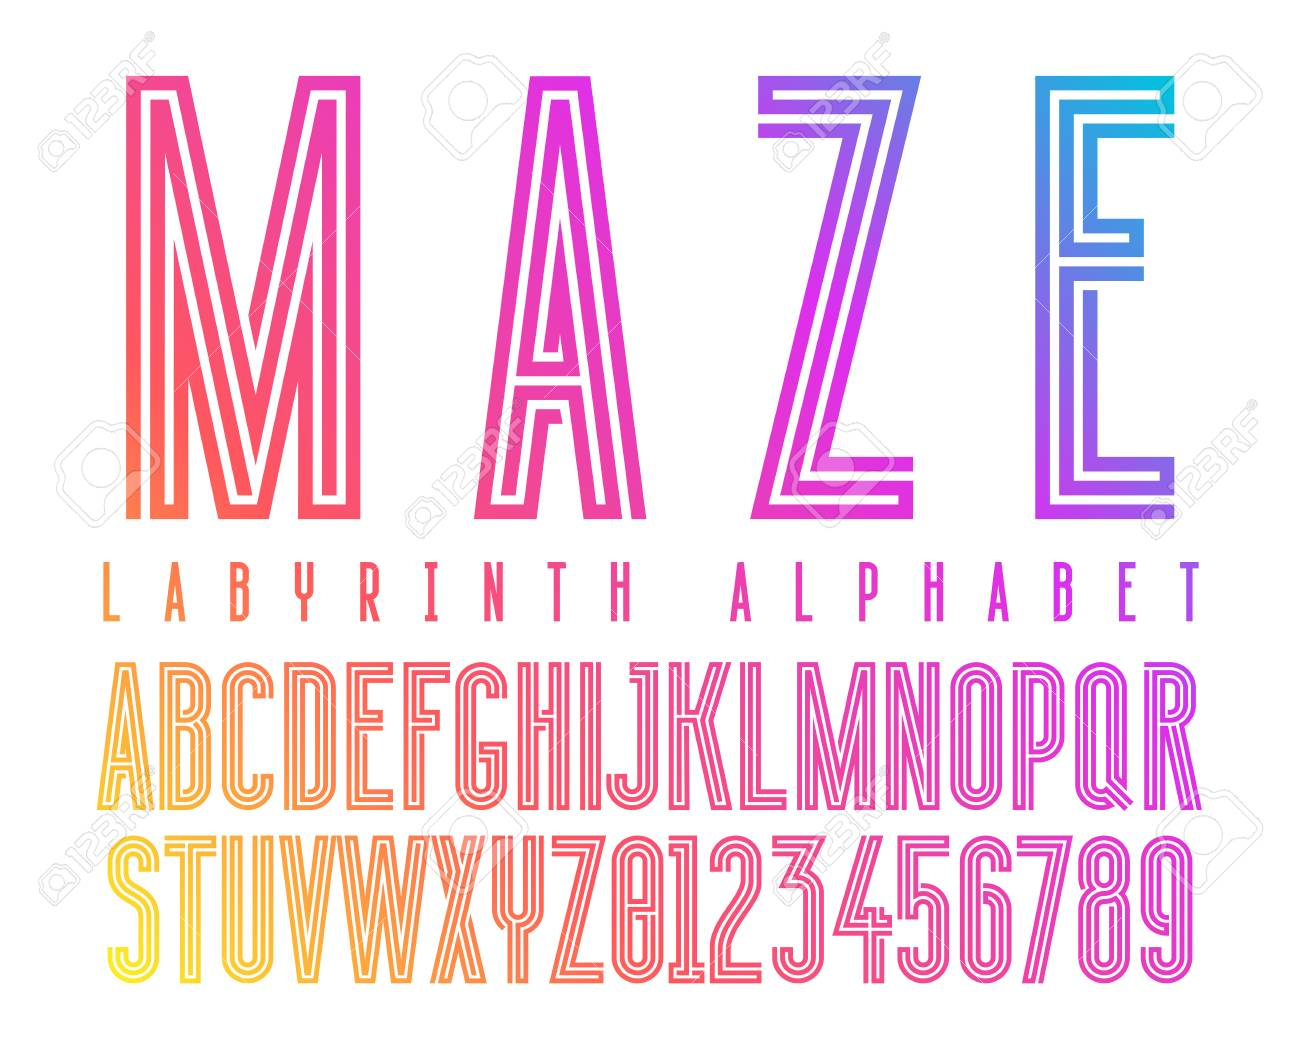 Futuristic Maze Alphabet Letters Geometric Labyrinth Font On Royalty Free Cliparts Vectors And Stock Illustration Image 127721819